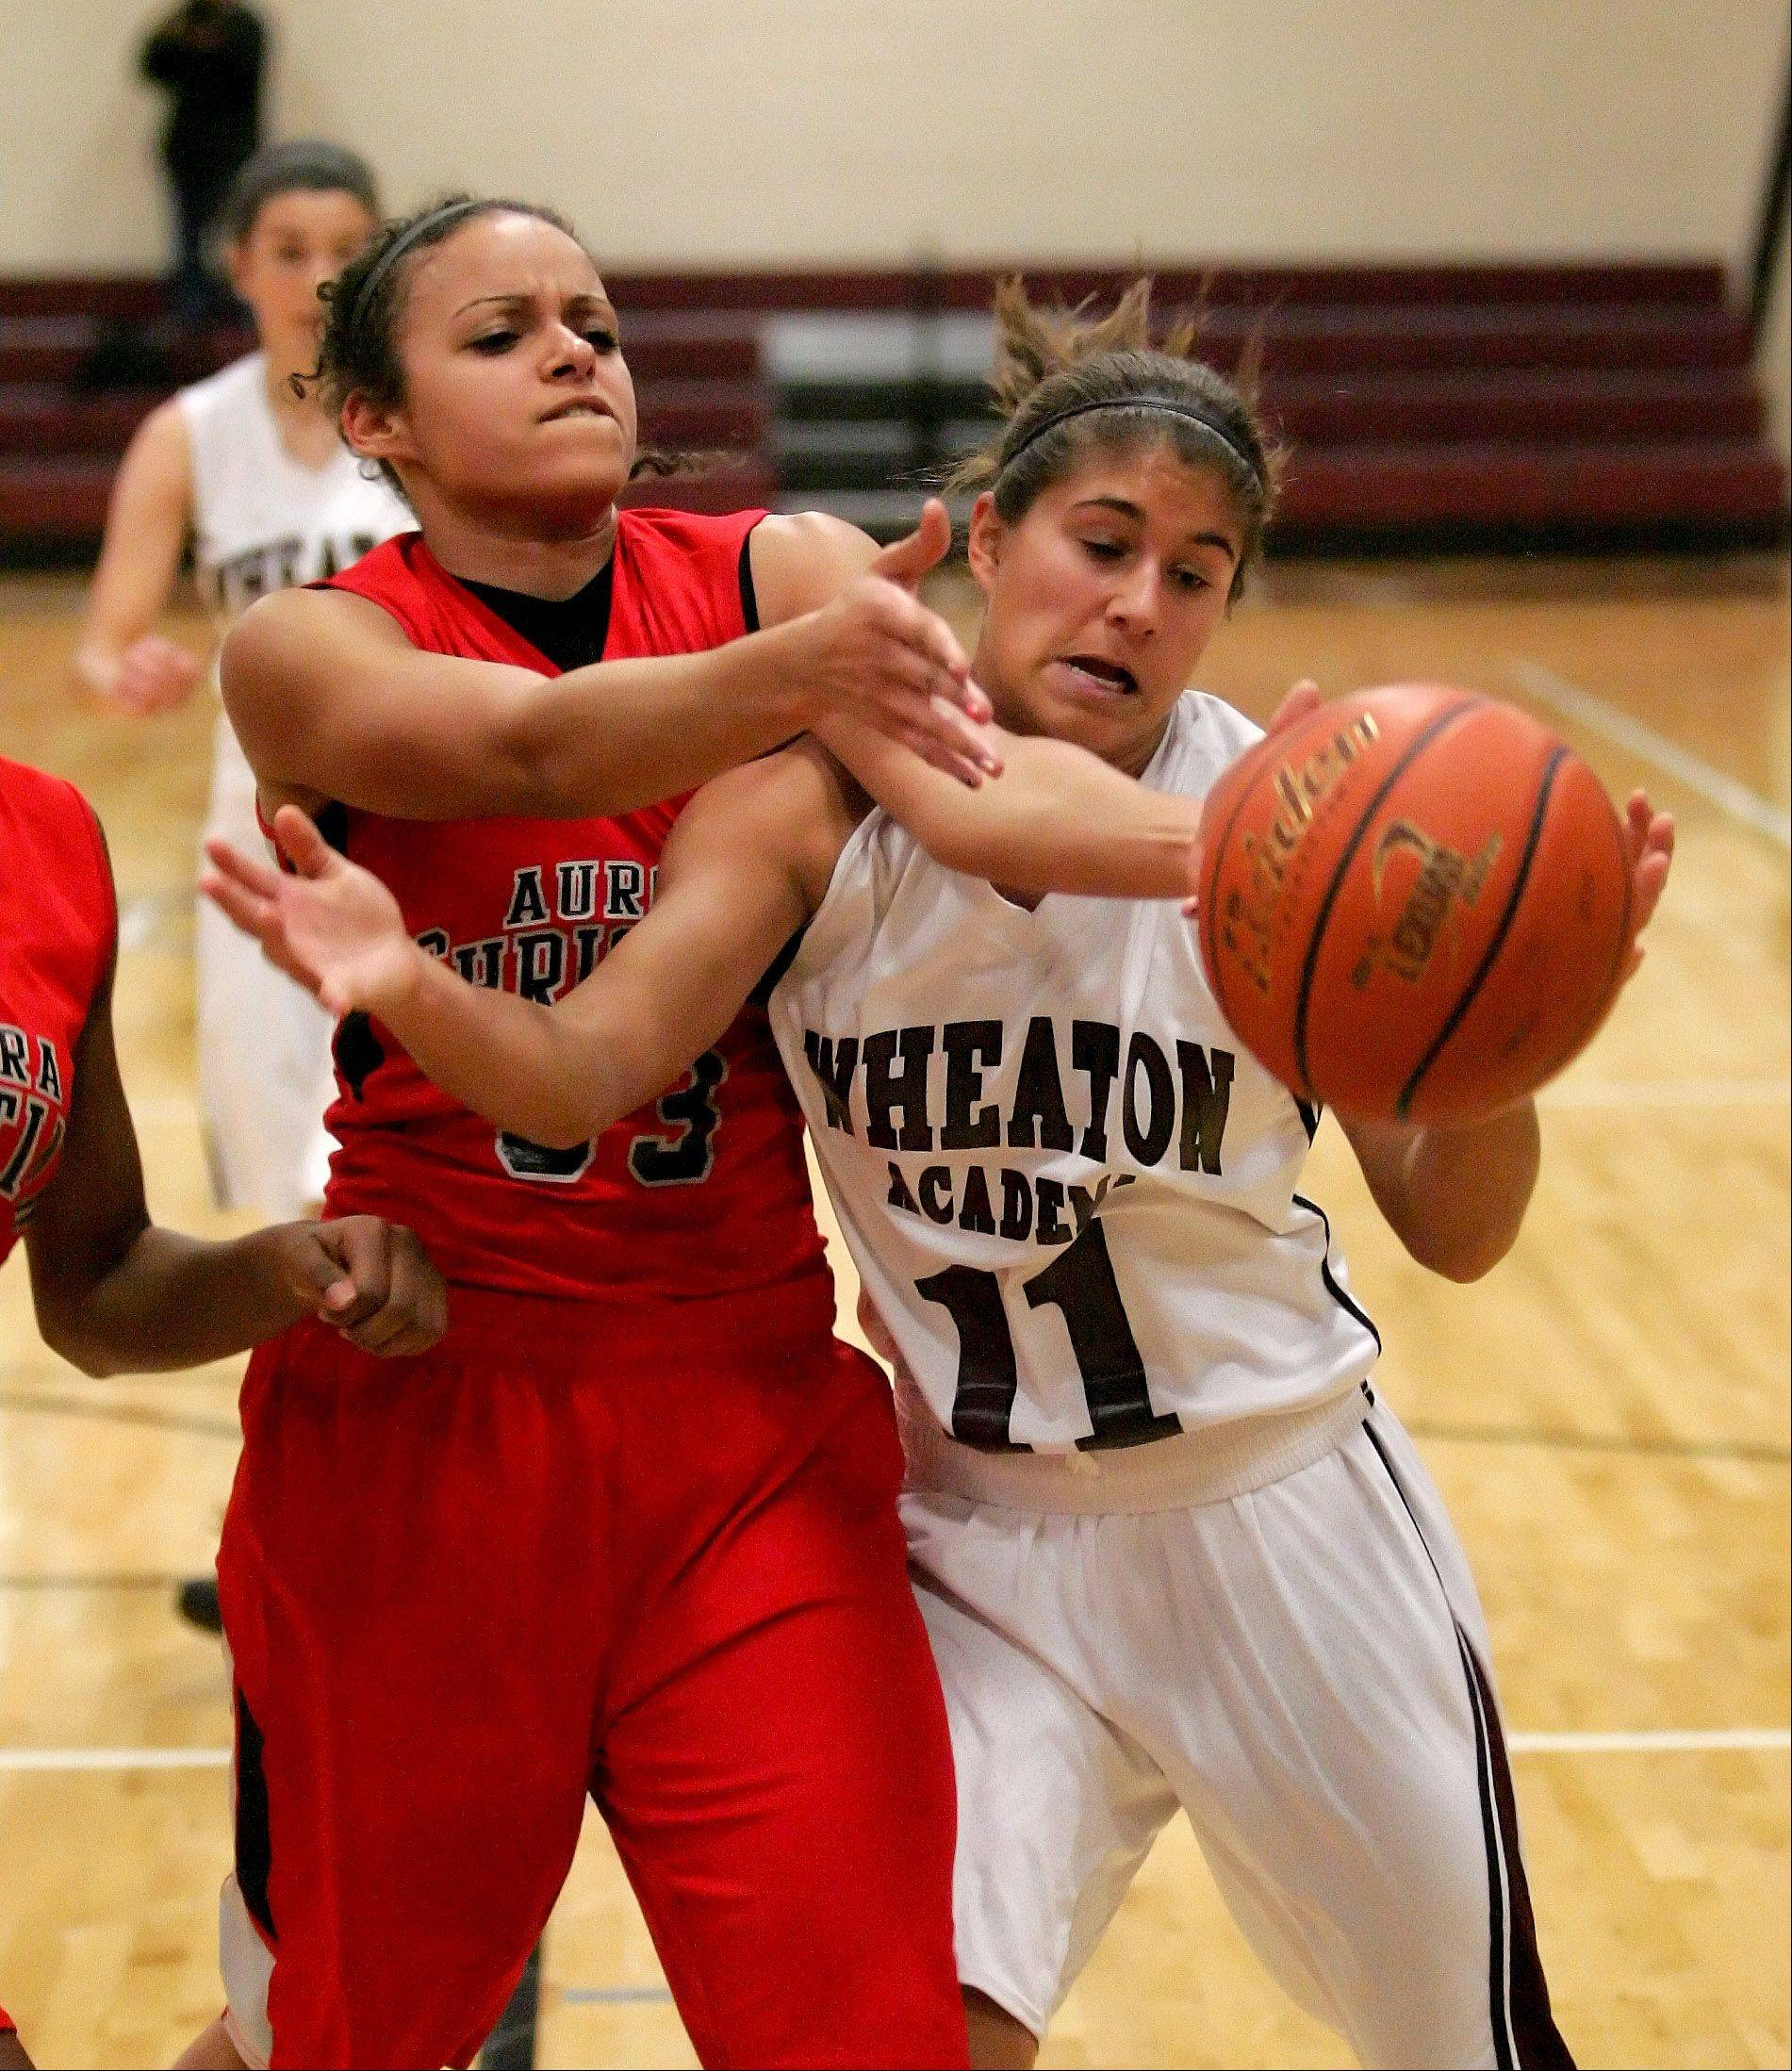 Alyssa Andersen, left, of Aurora Christian and Marissa Gagliano of Wheaton Academy, right, go after a loose ball during girls basketball action in West Chicago on Monday.